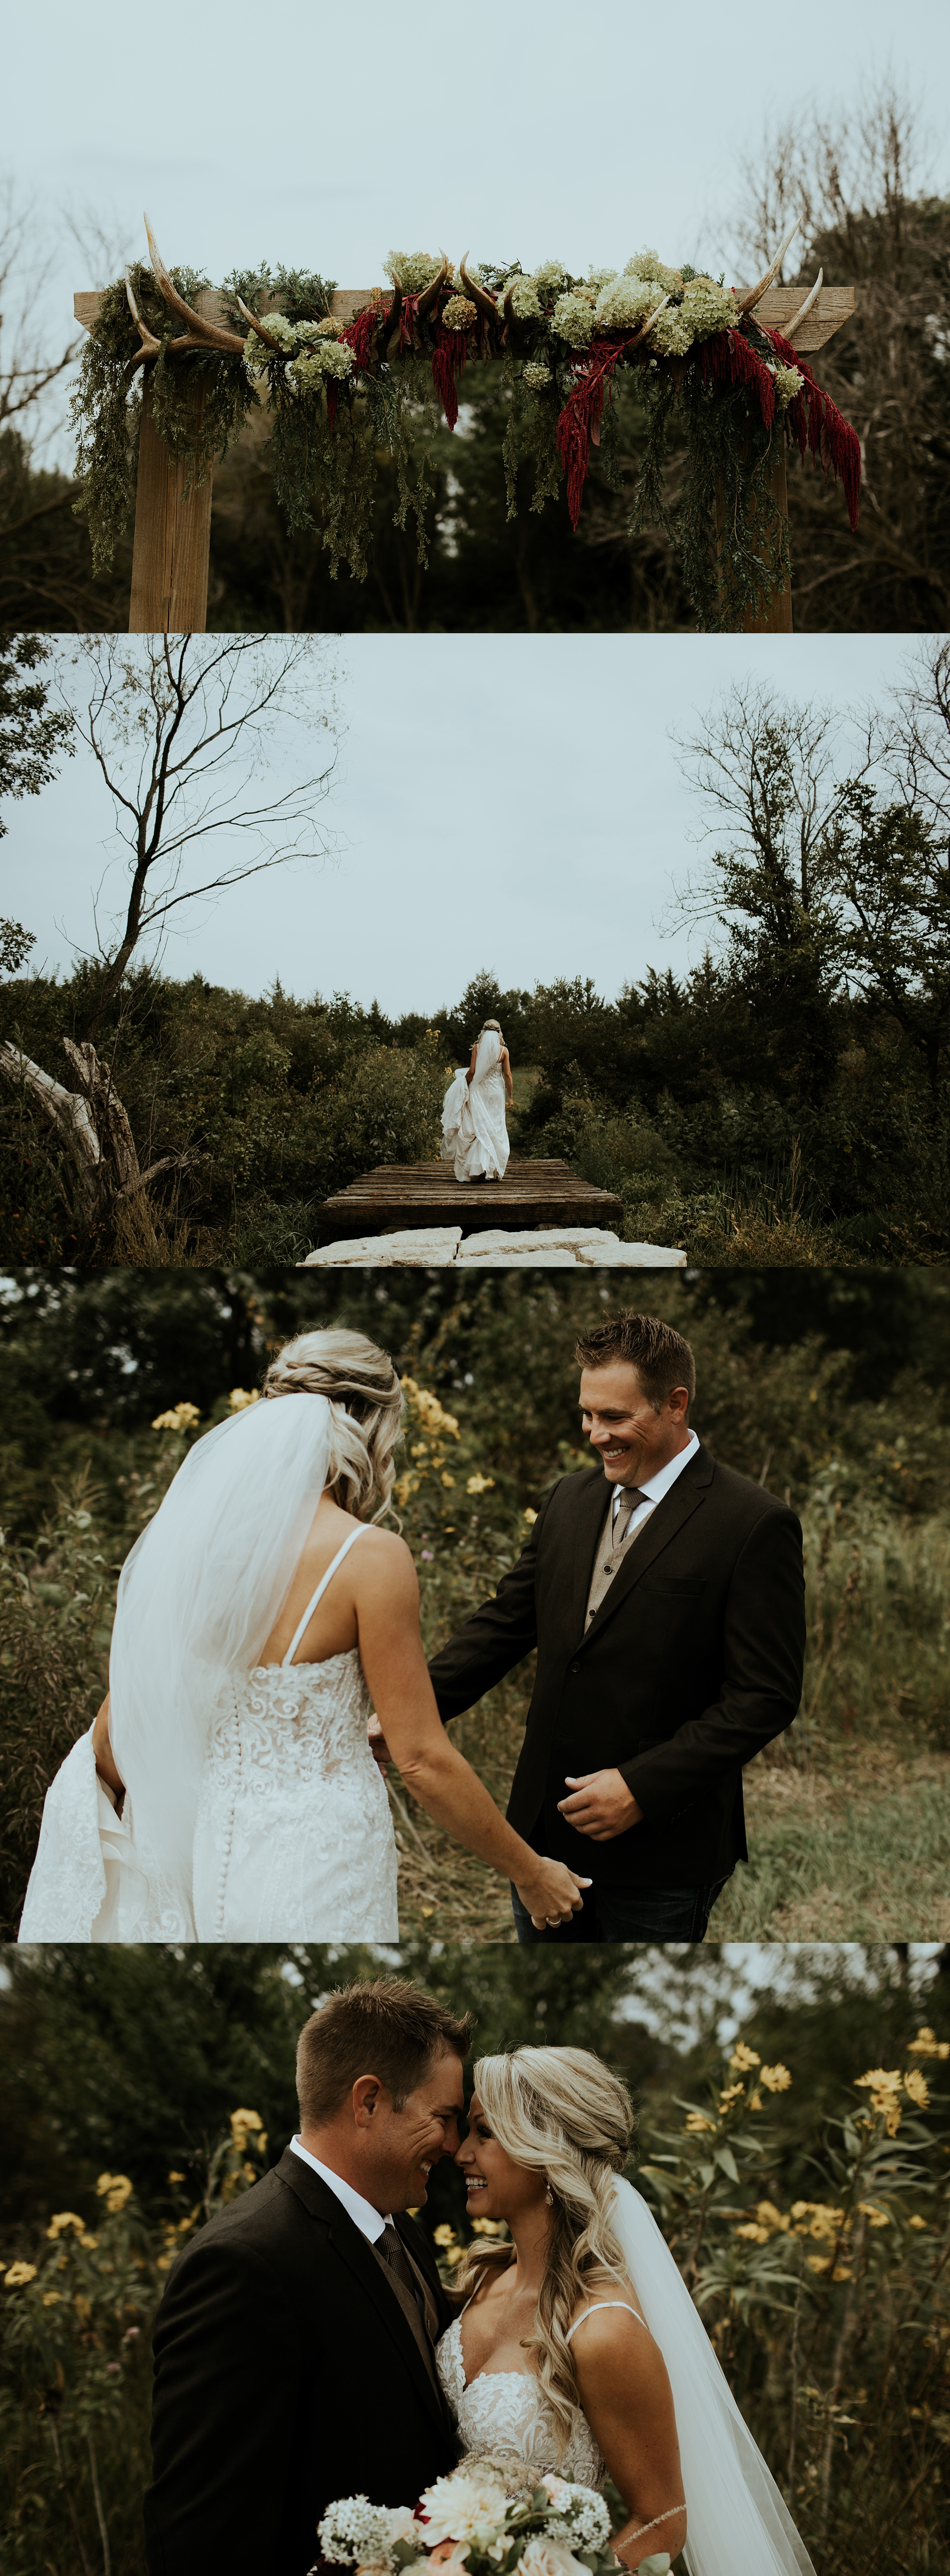 Earthy Lincoln Nebraska Outdoor Wedding with a Rustic Flair Complete with a Firework Ending by Trin Jensen Photography_0003.jpg